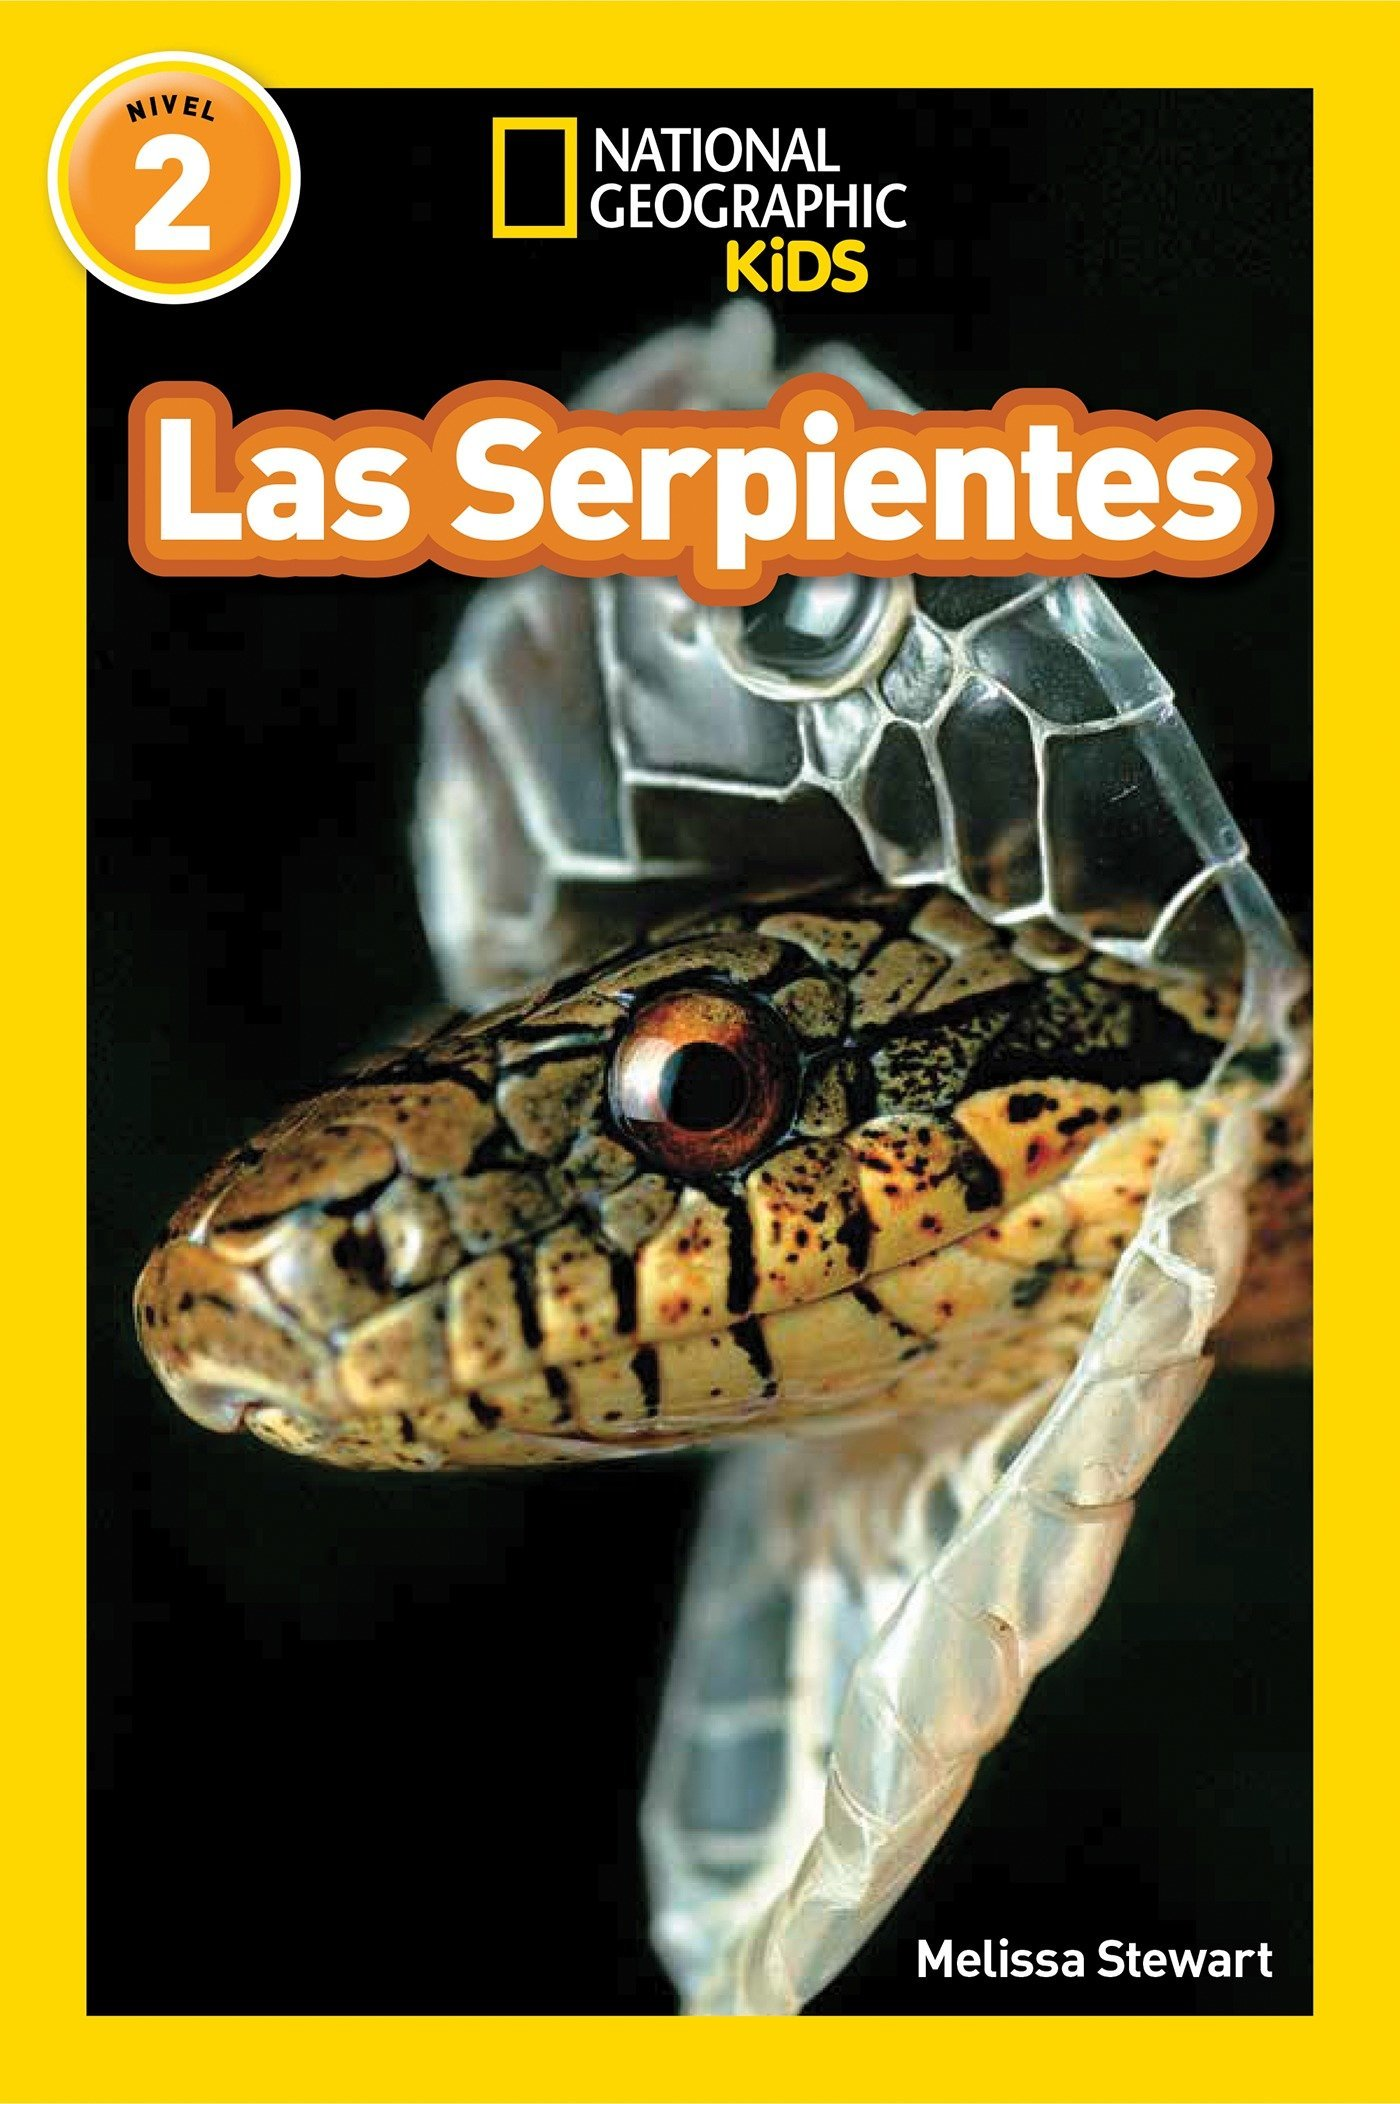 National Geographic Readers: Las Serpientes (Snakes) (Spanish Edition)